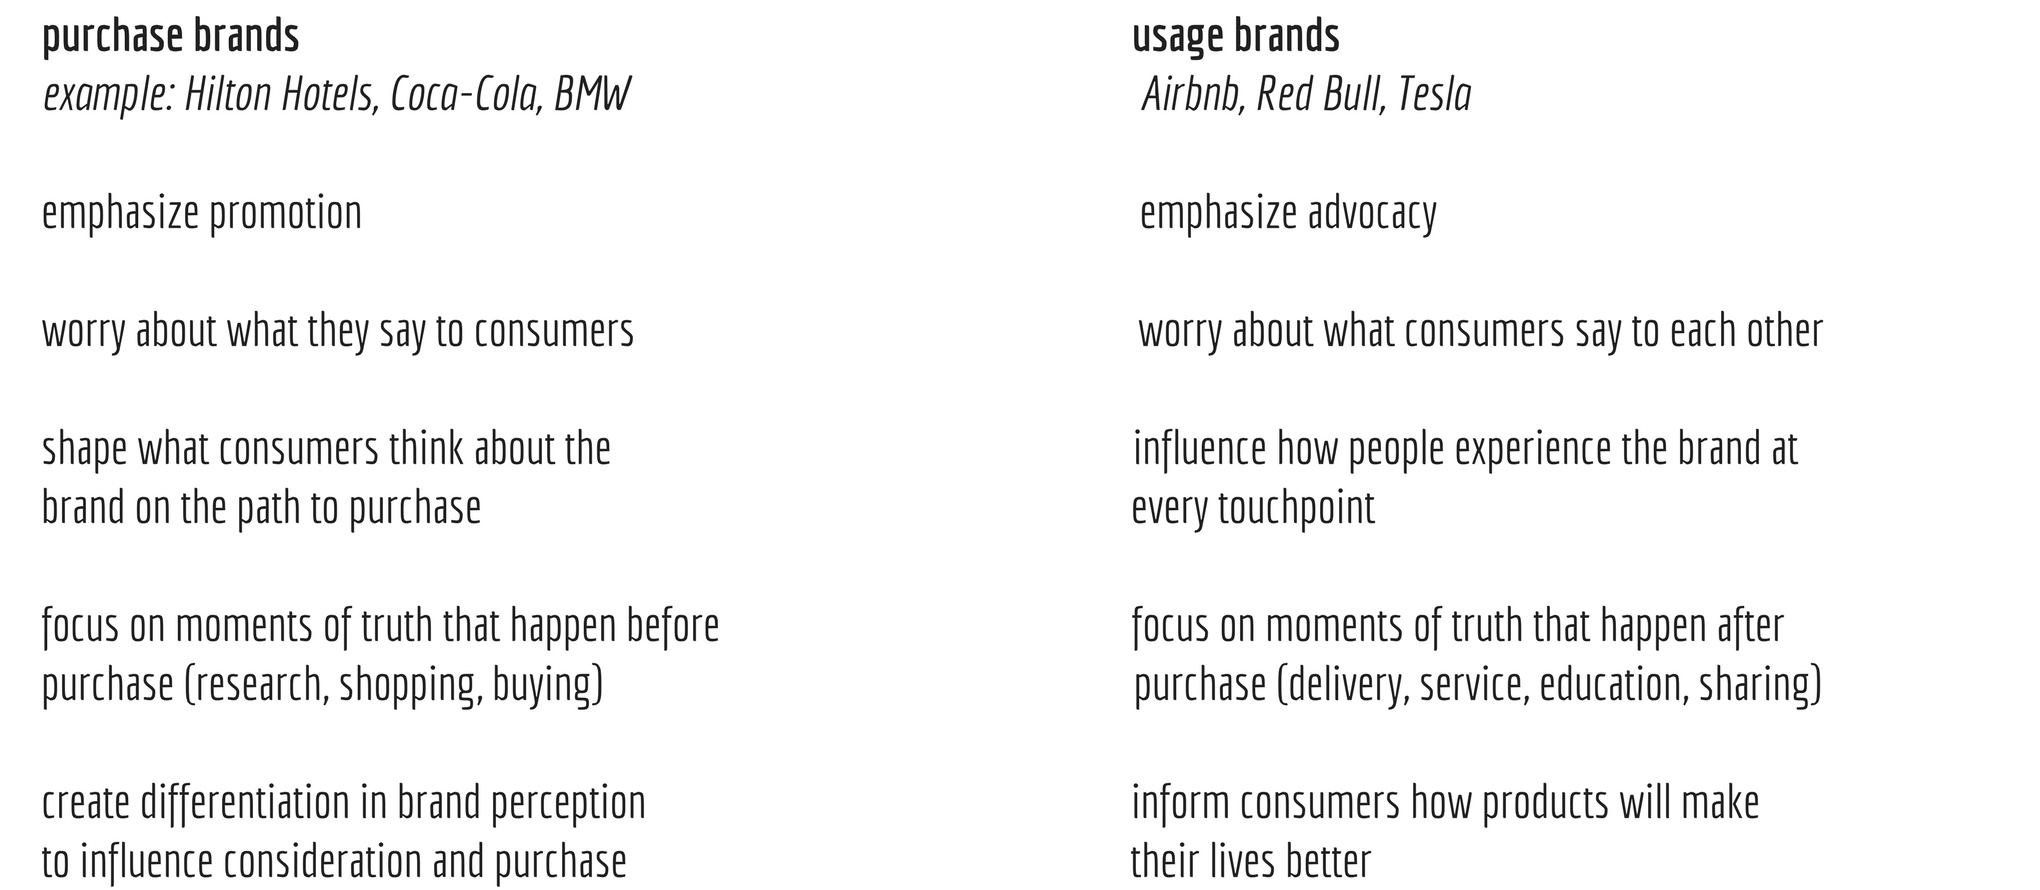 Add a little bit purchase brands usage brands example_ Hilton Hotels, Coca-Cola, BMW Airbnb, Red Bull, Teslaemphasize promotion emphasize advocacyworry about what they say to consumers worry about what consumers say .jpg